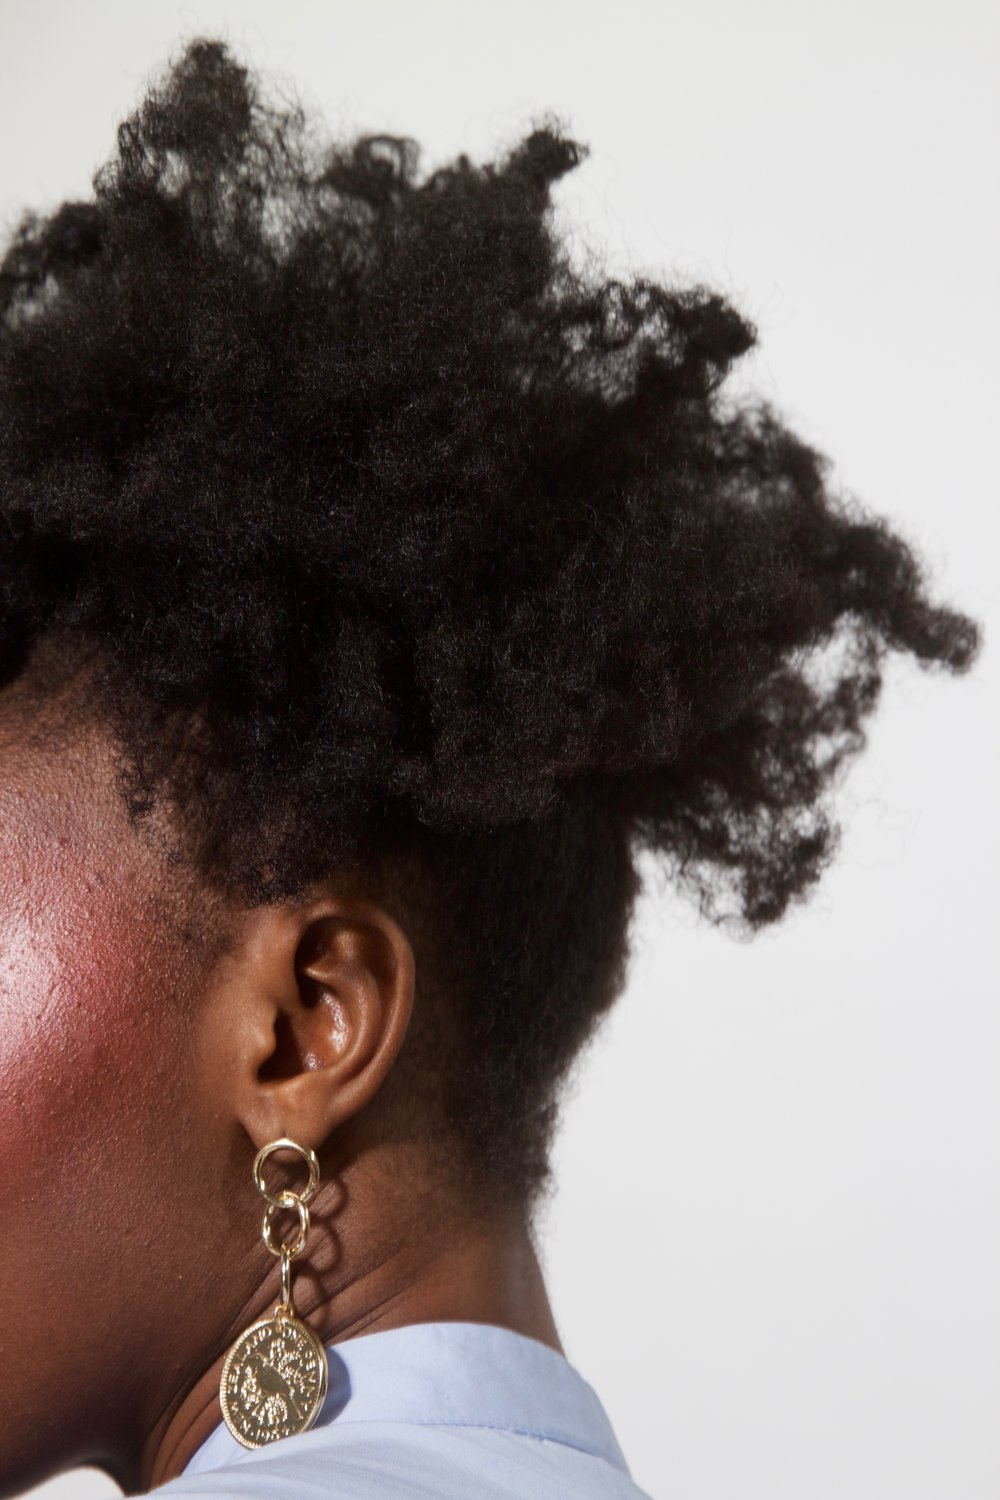 Let's talk hair. - Kinks, coils and curls! It's more than hair, and BLSH understands that.